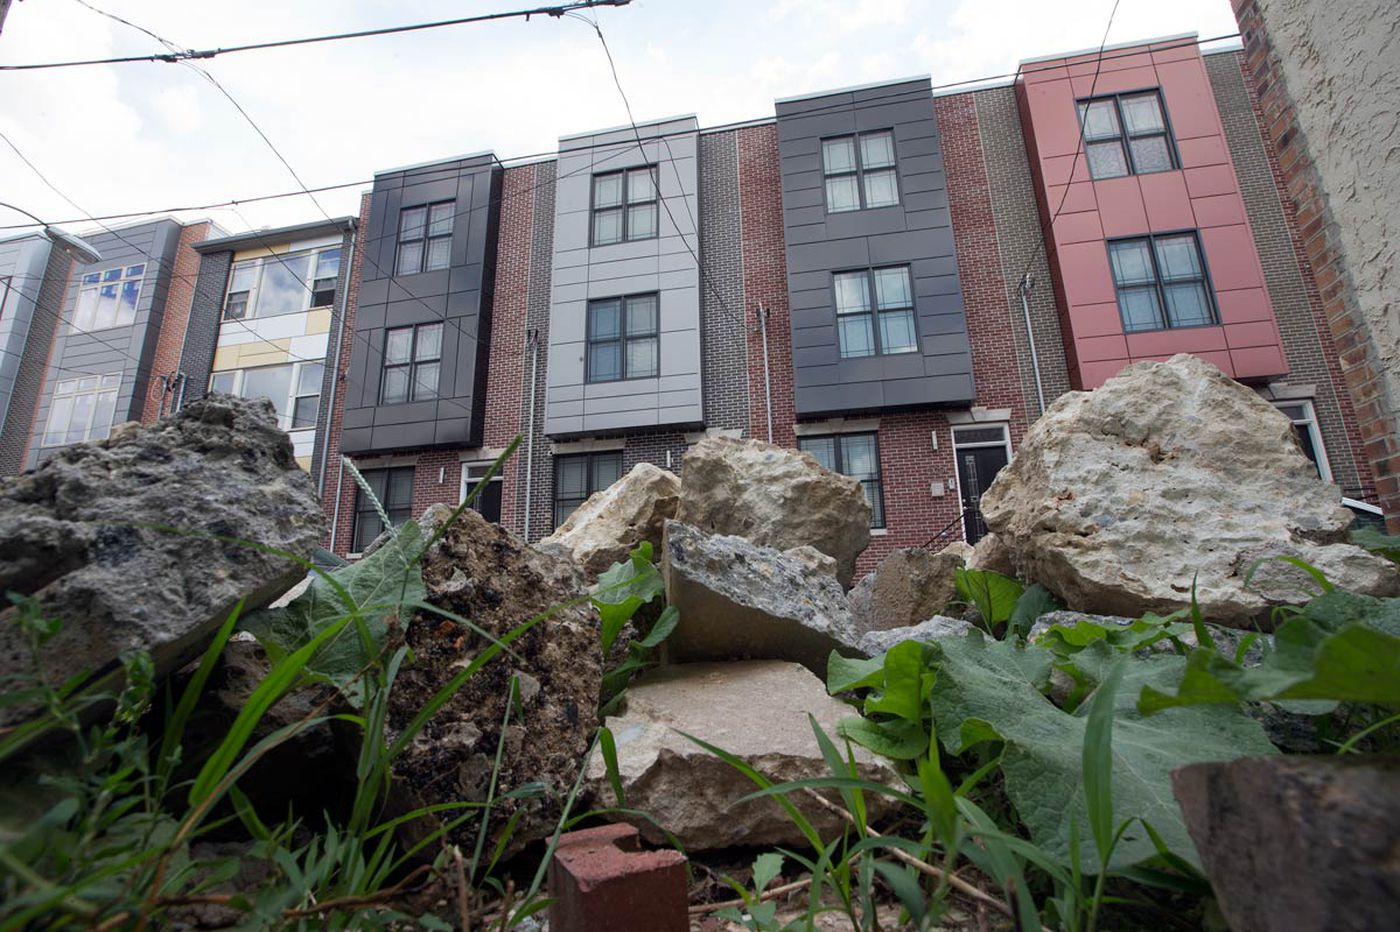 Study on gentrification's benefits for long-time residents is surprising and useful | Editorial